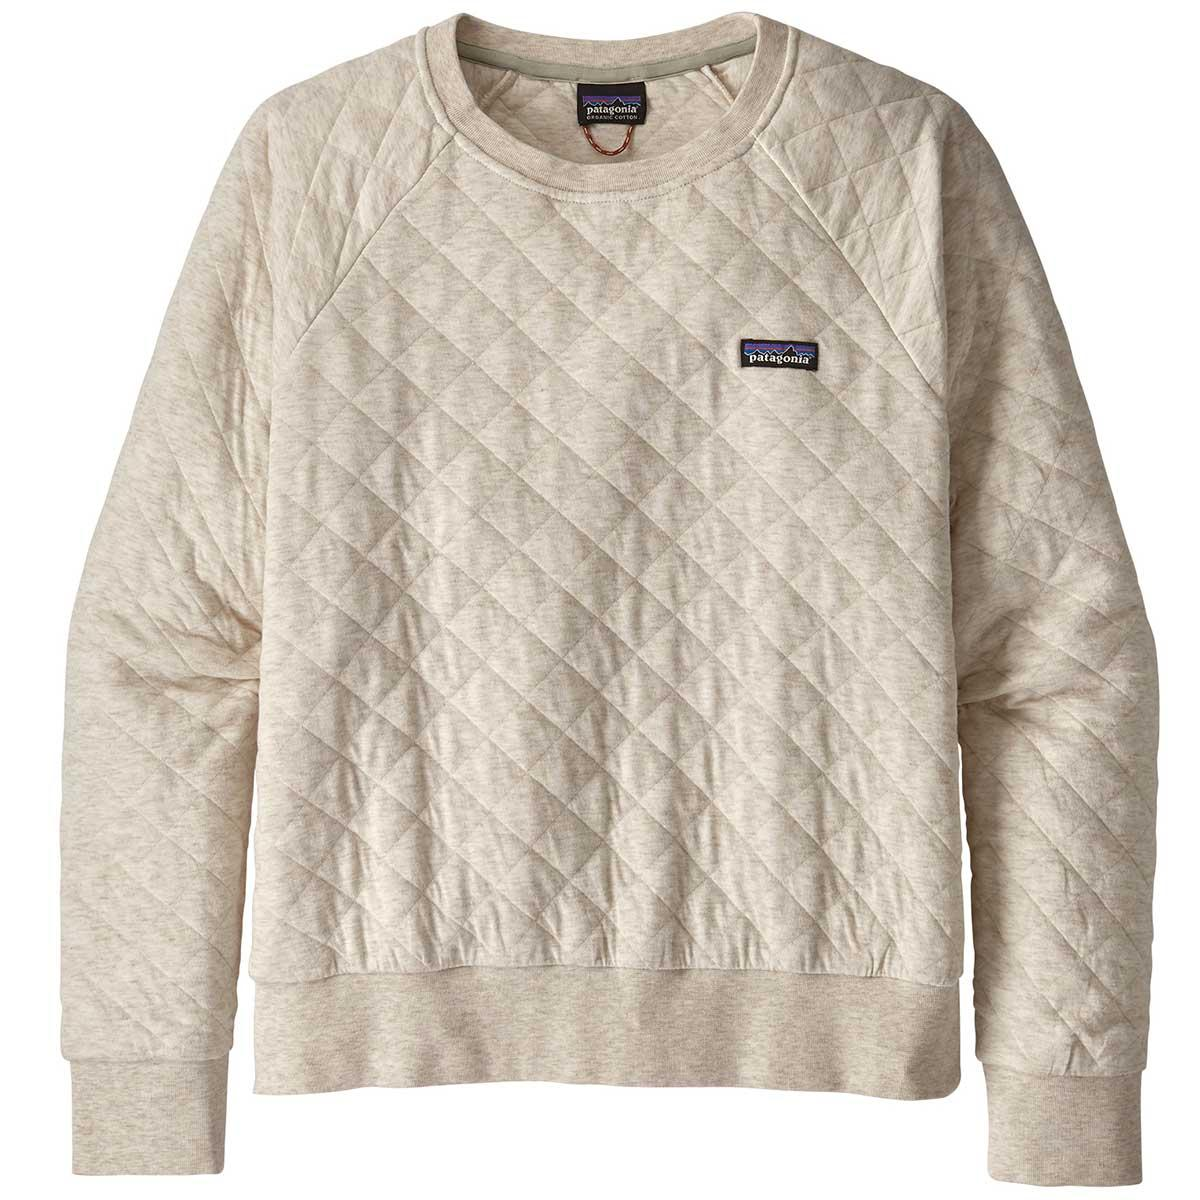 Patagonia women's Cotton Quilt Crew in Dyno White front view